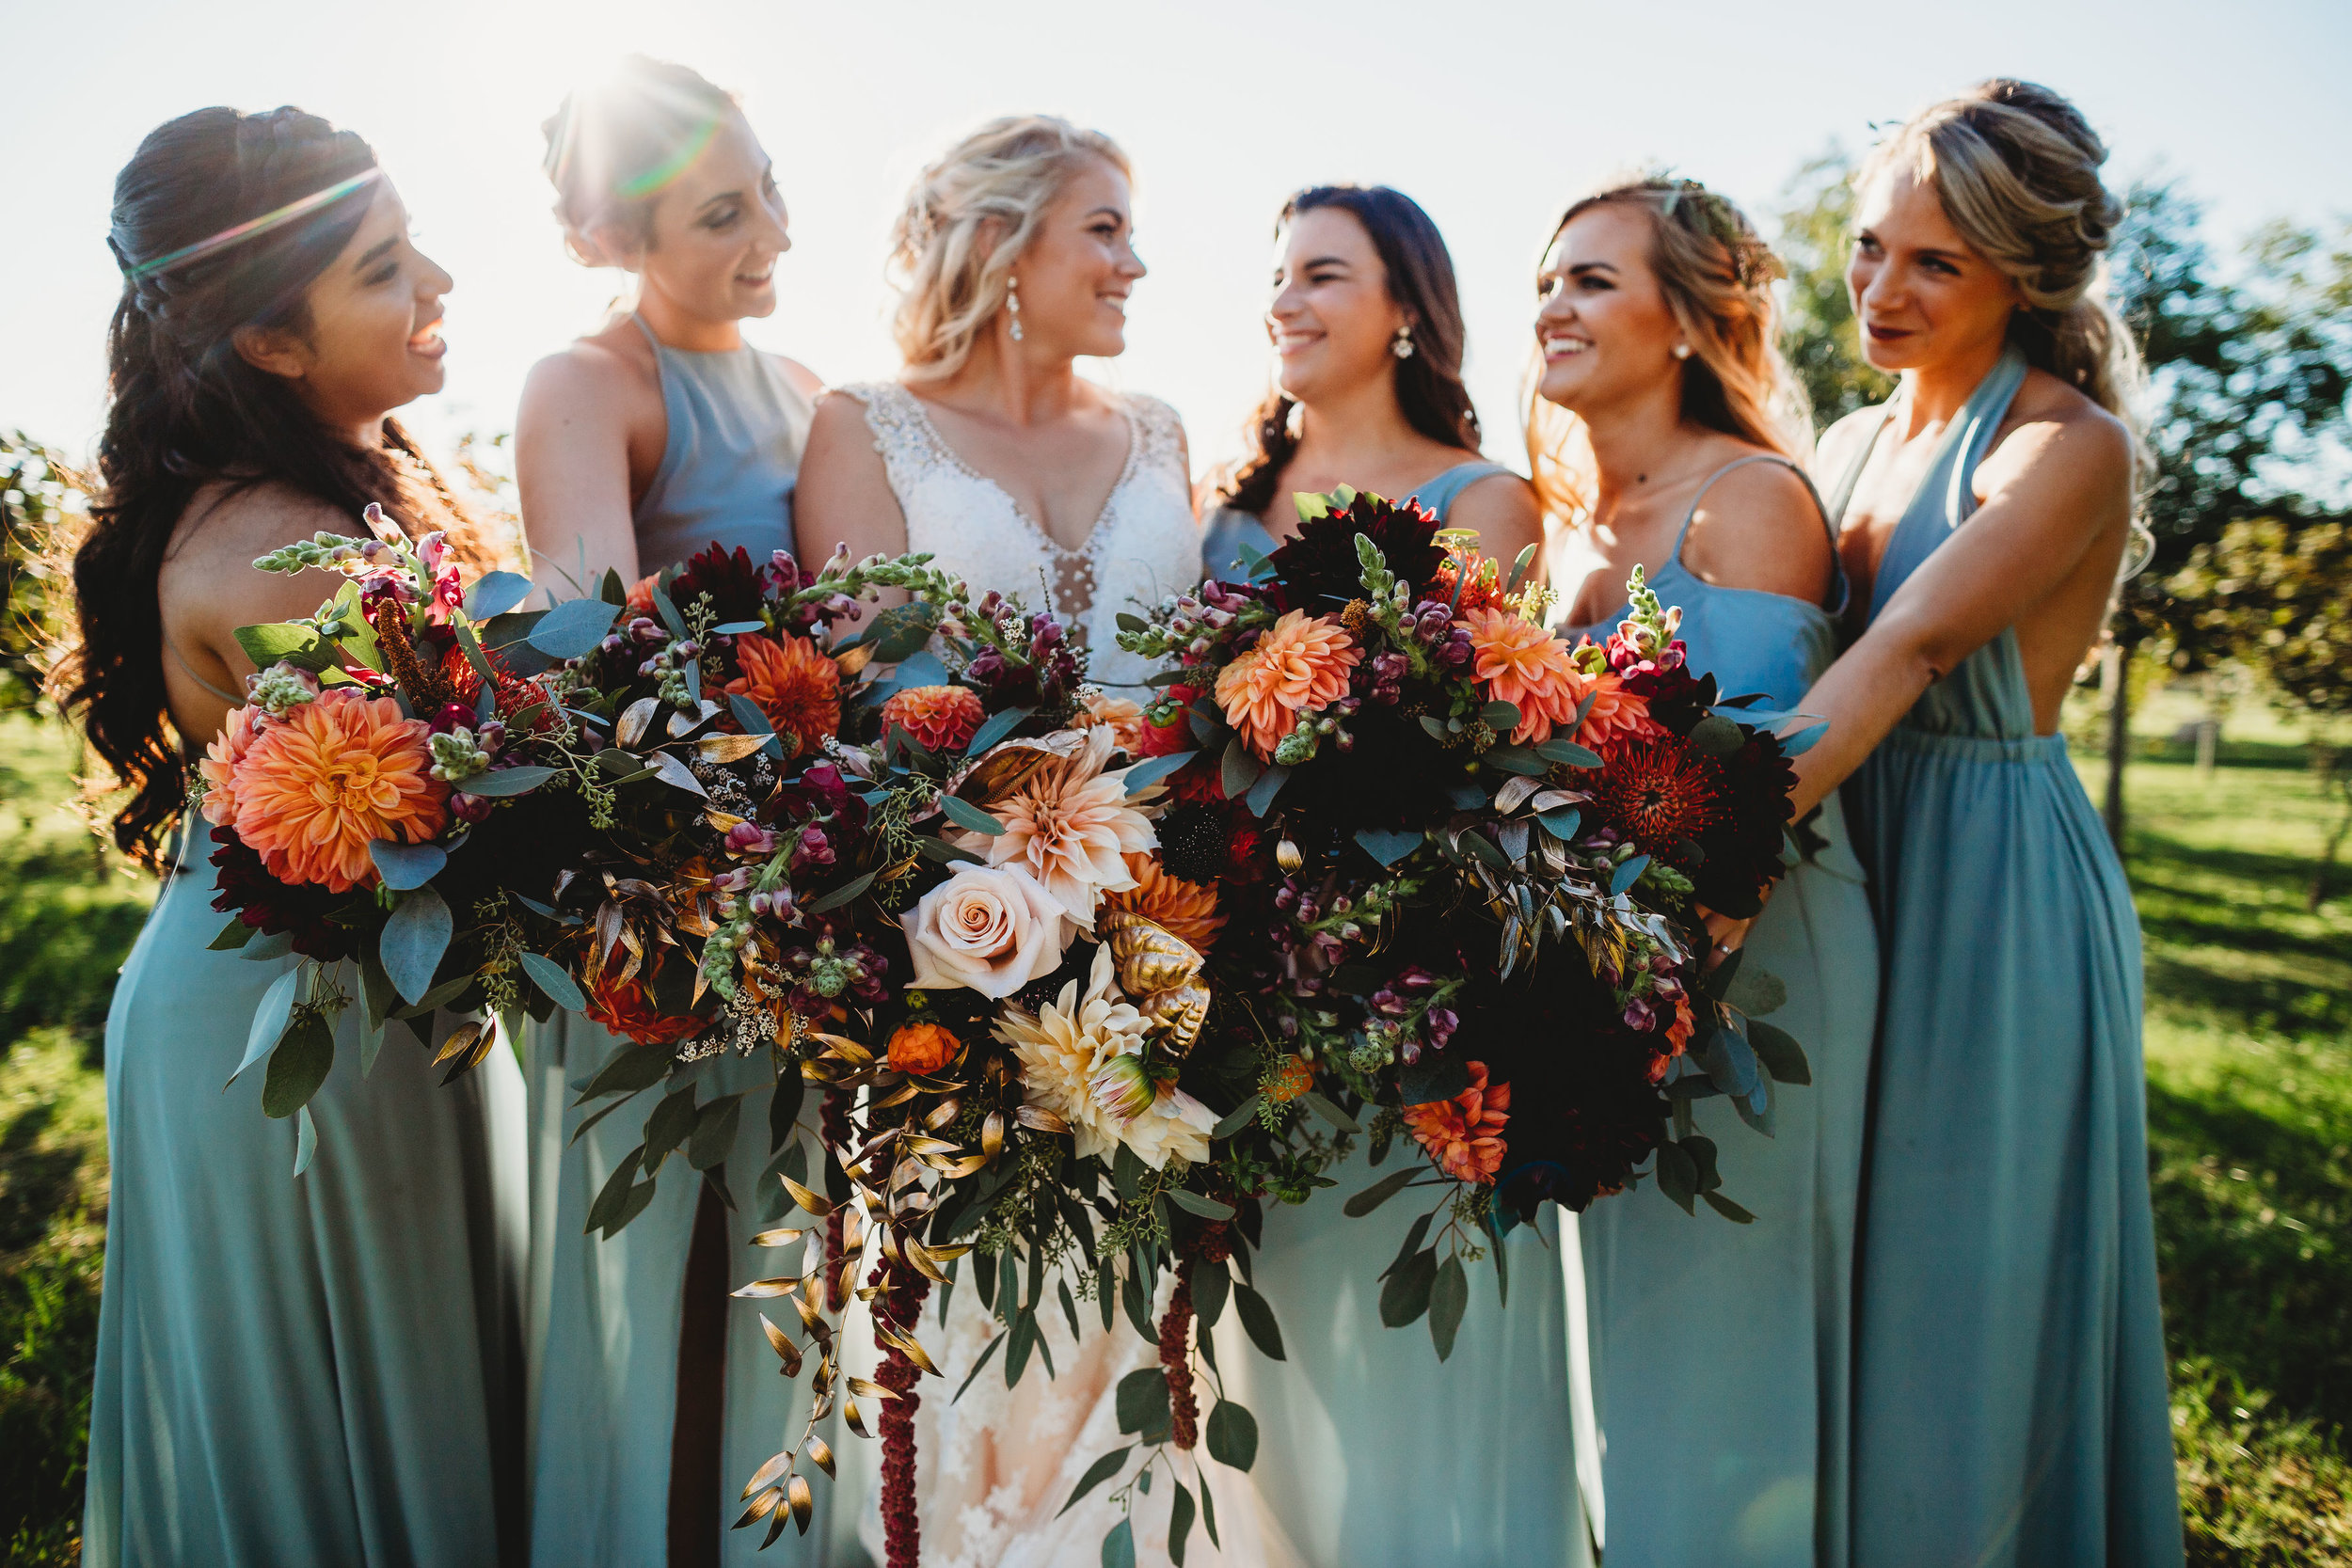 {Photos by: Wild Bliss Photography}